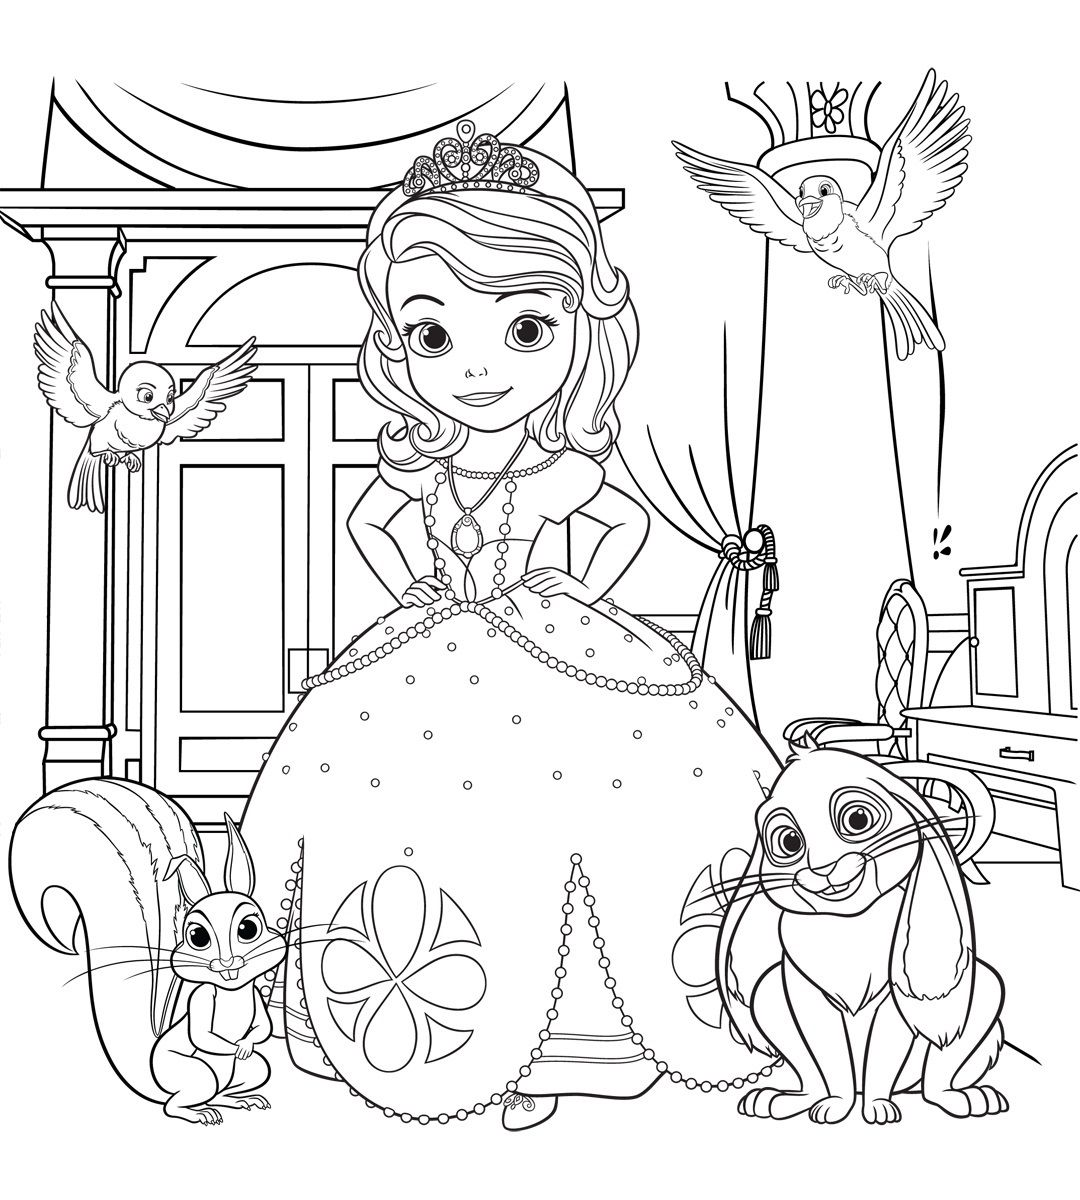 Sofia the First coloring pages for girls to print for free ...